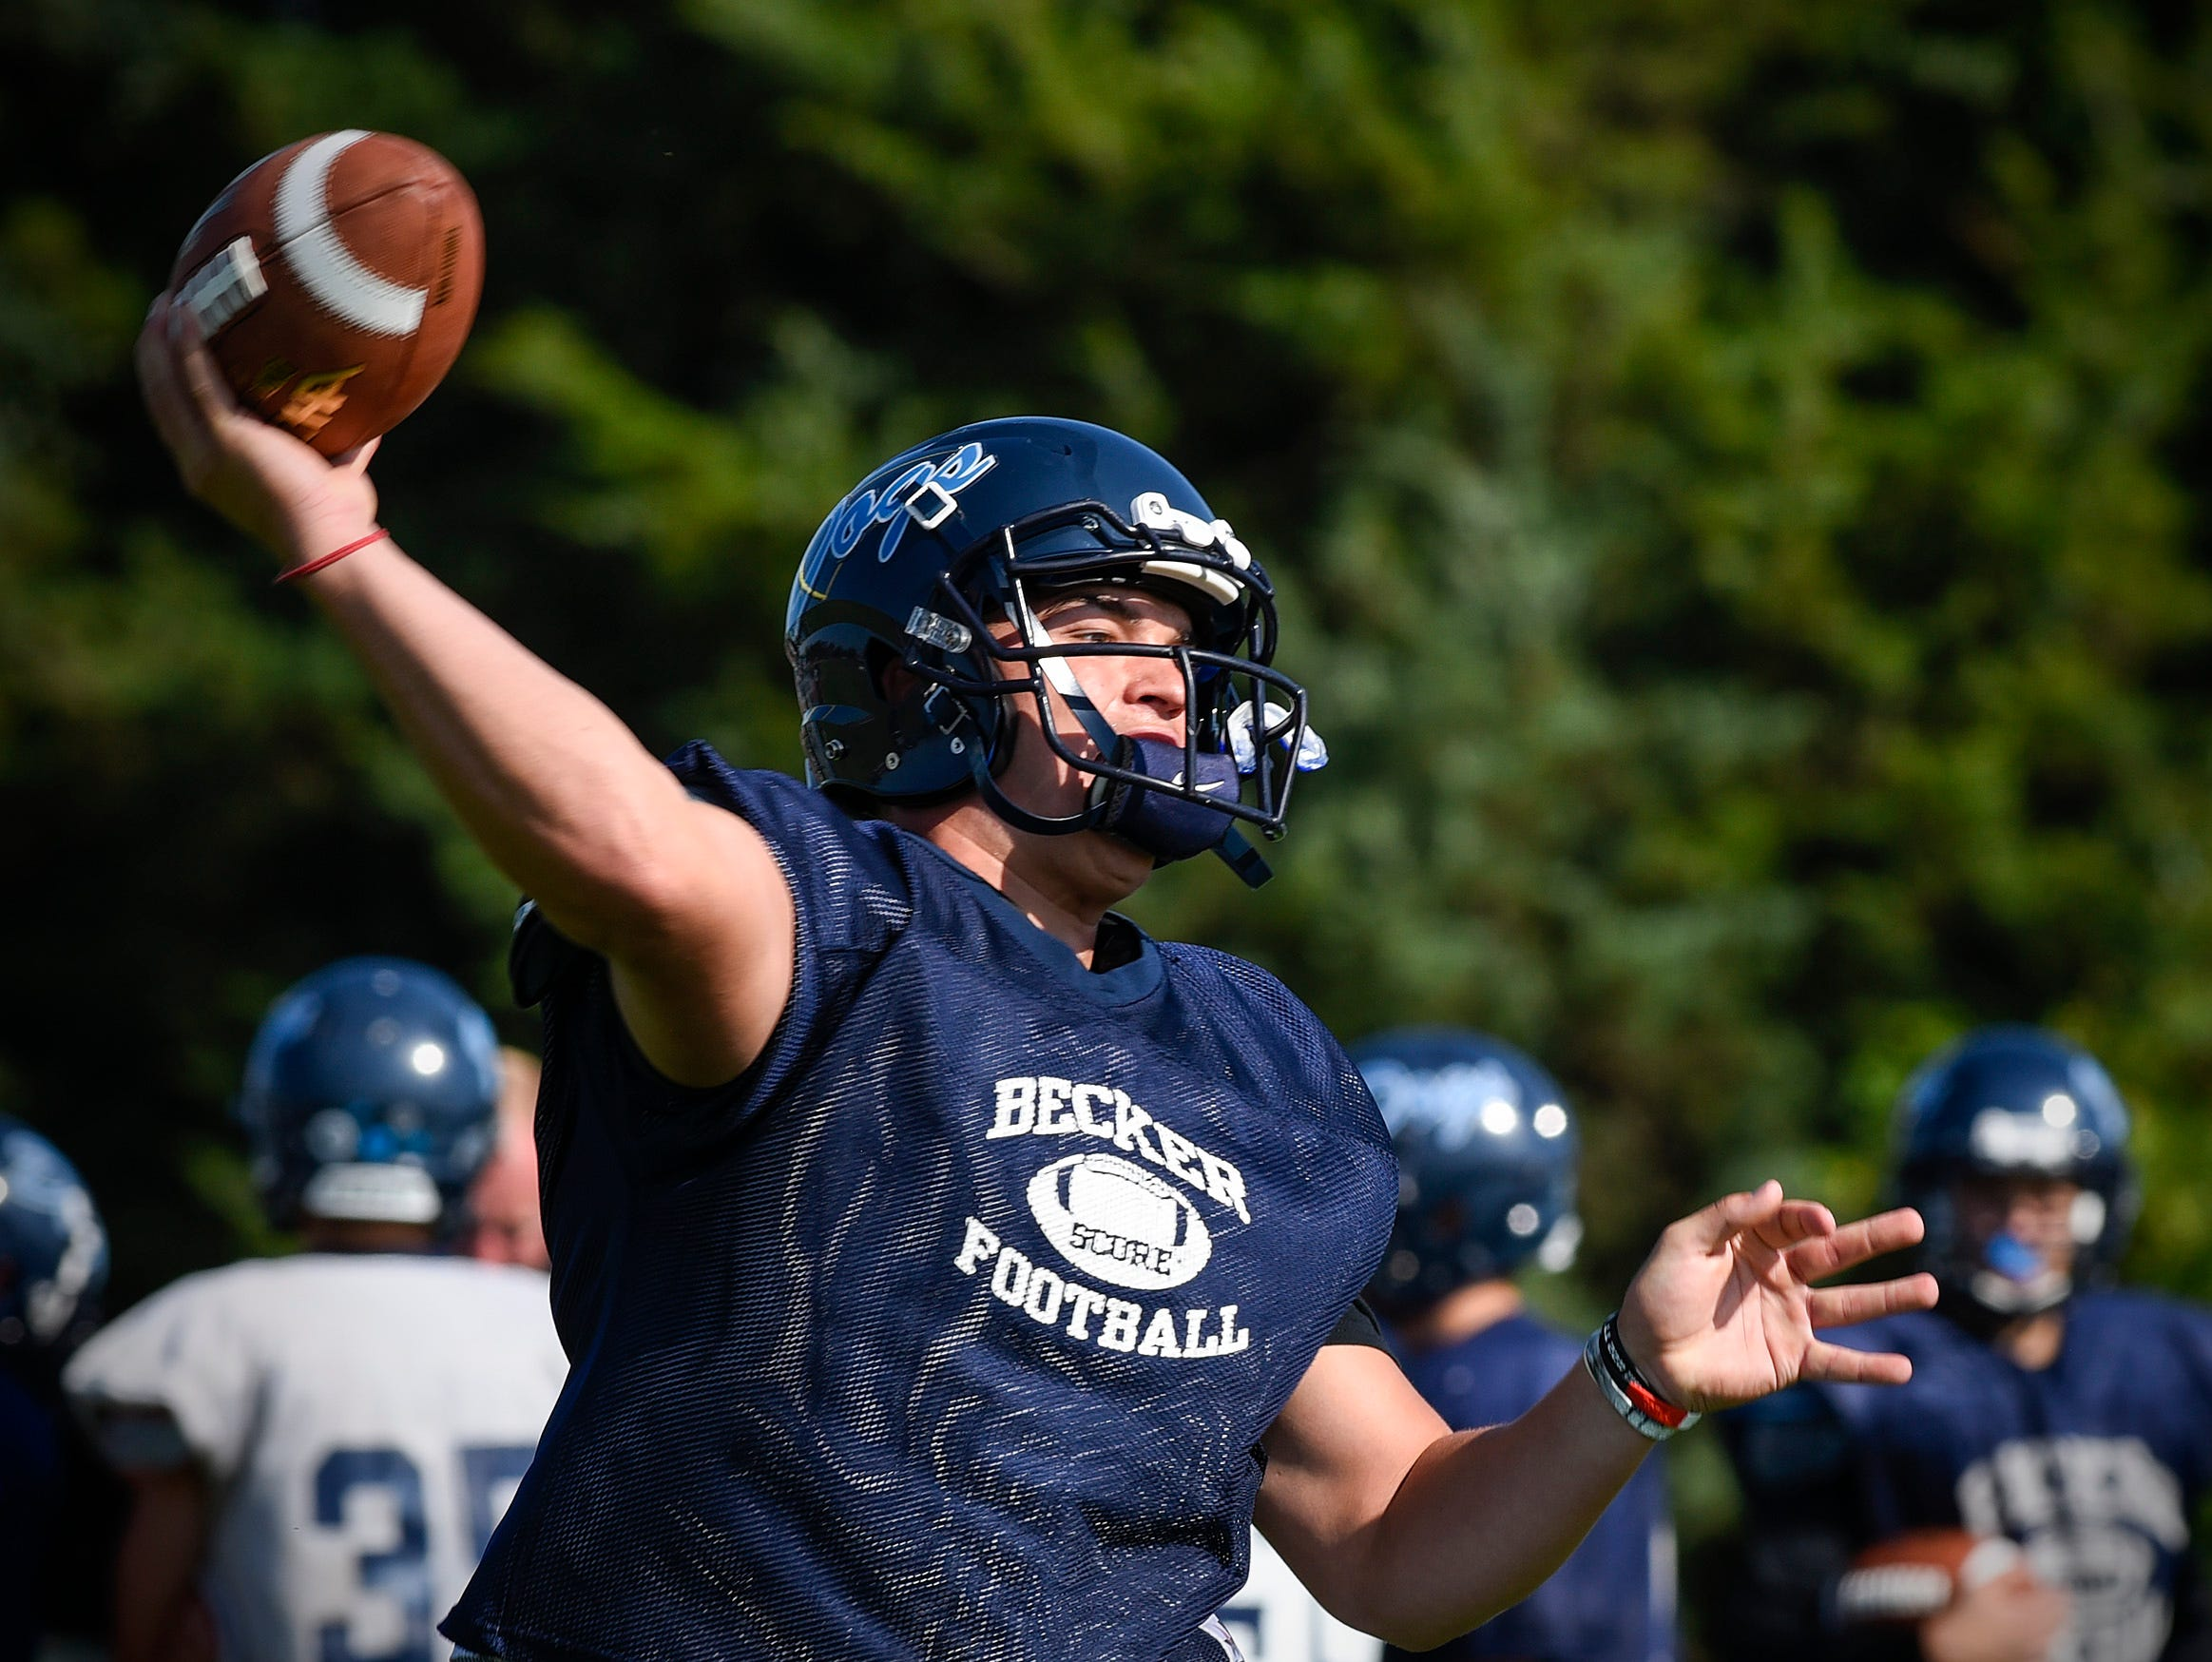 Becker quarterback Josh Fobbe drops back and makes a pass Wednesday, Aug. 22, at the Becker High School.